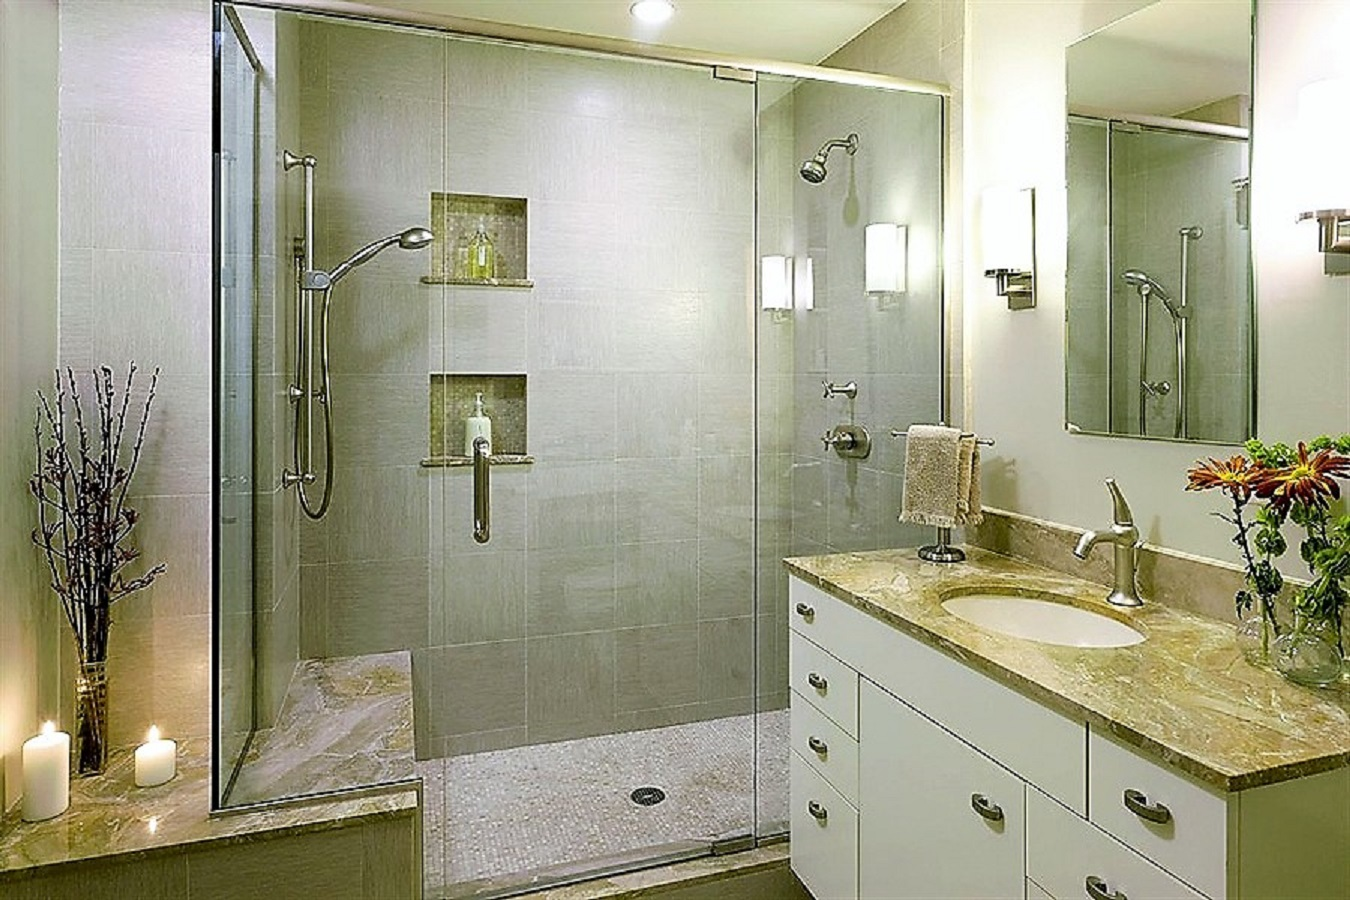 Searching For Bathroom Renovation Services? Here's Your Guide!